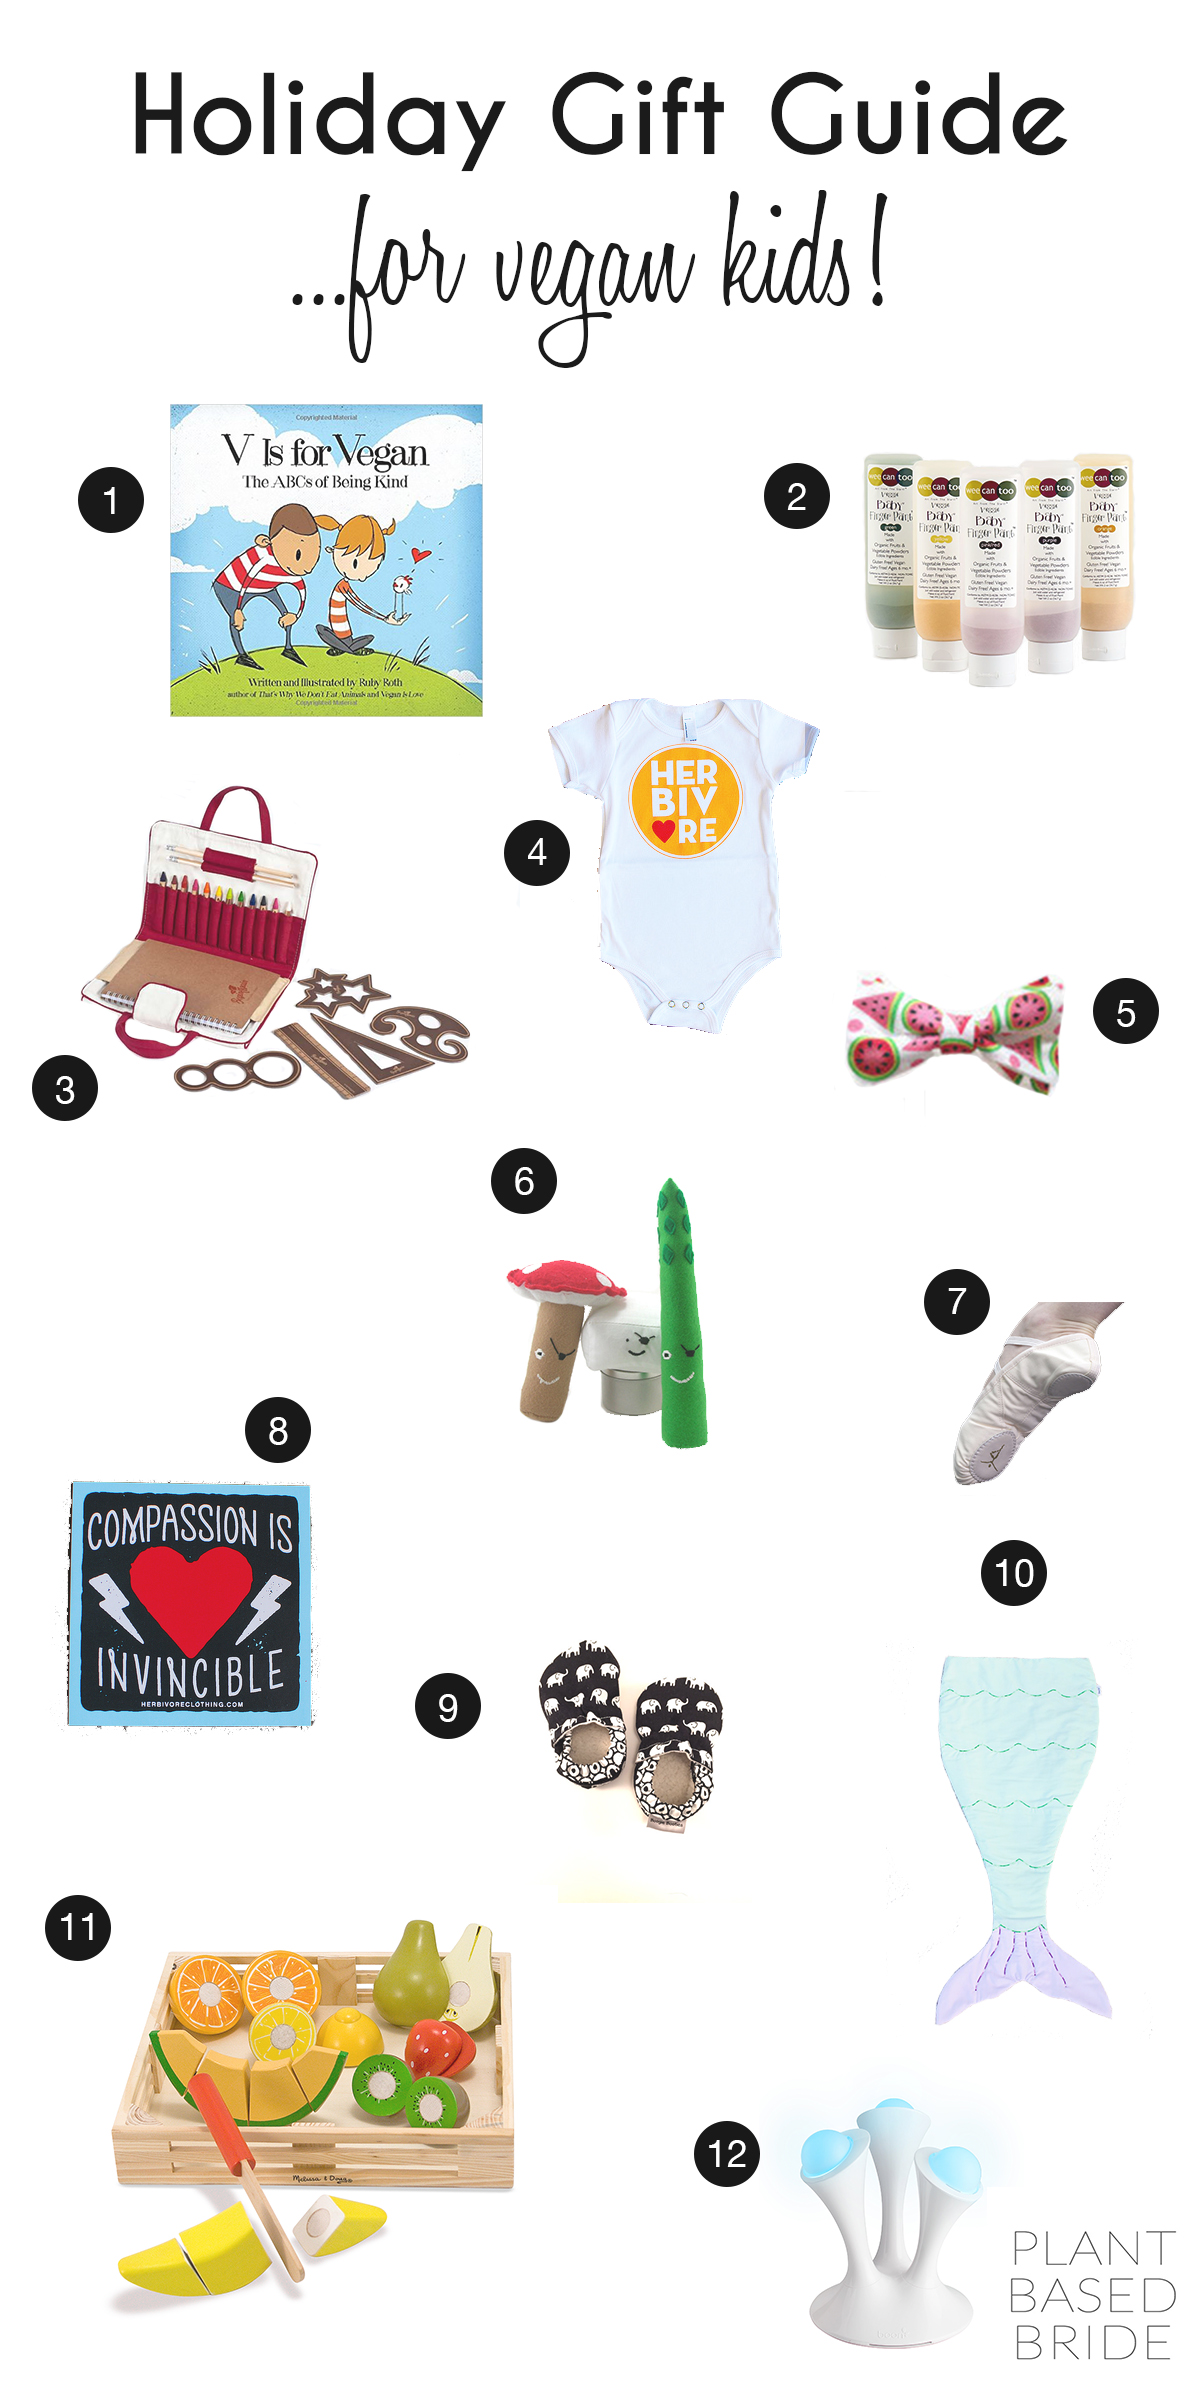 Looking for a gift for the vegan child in your life?  Or maybe they're not vegan, but you are and want to purchase something for them that fits within your ethical beliefs.  Either way, this list has some great ideas for kids of varying ages for this holiday season!